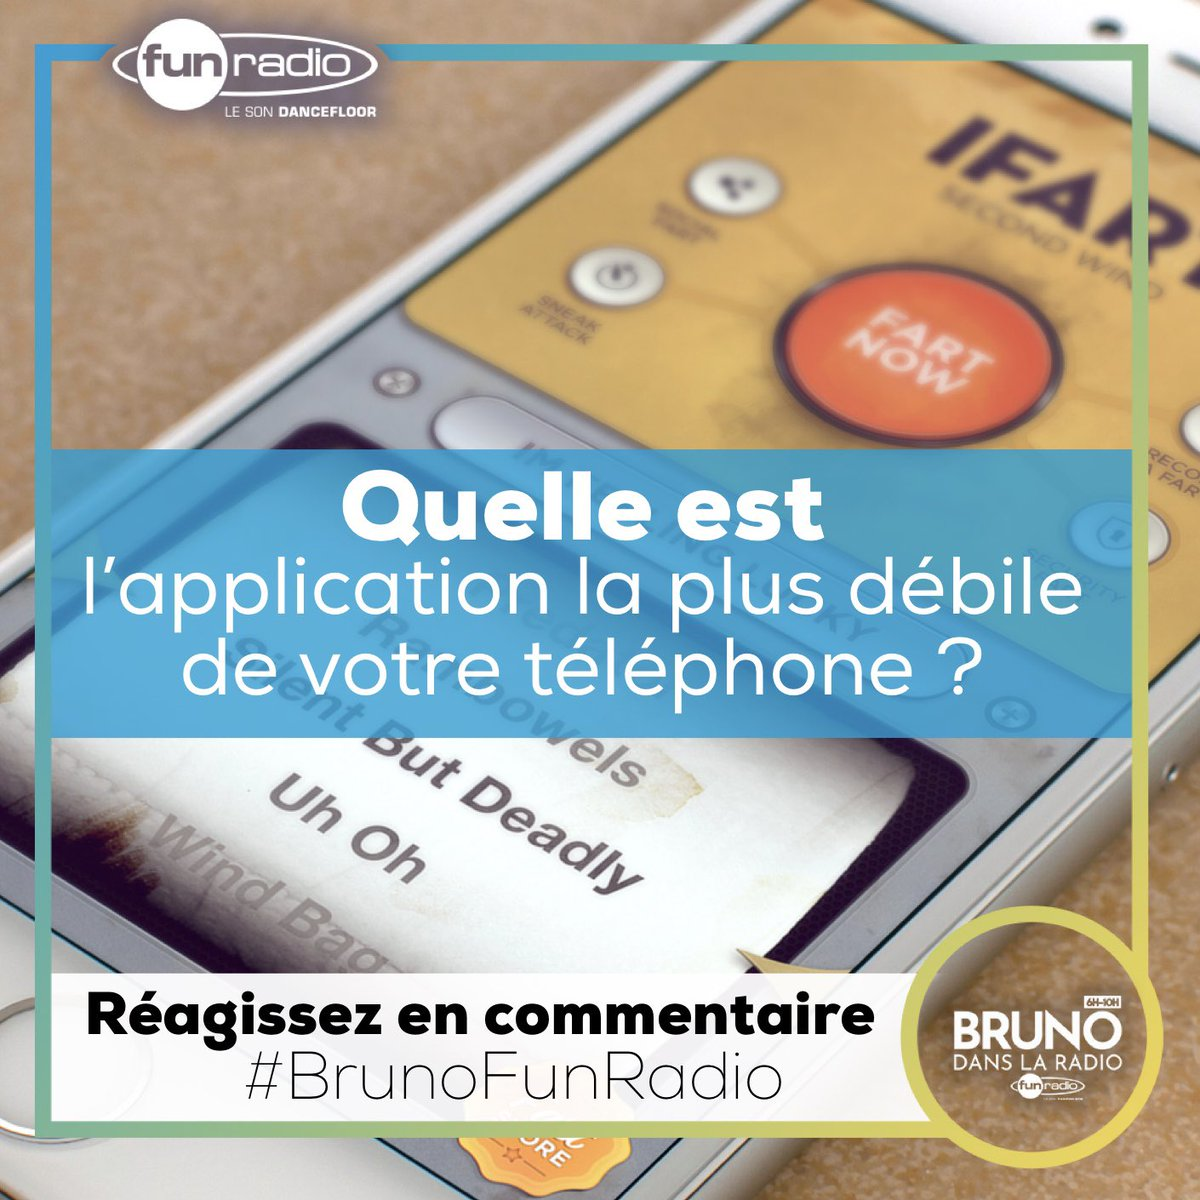 On se partage nos pires applications en commentaire !  #brunofunradio <br>http://pic.twitter.com/rZfsAeib8f